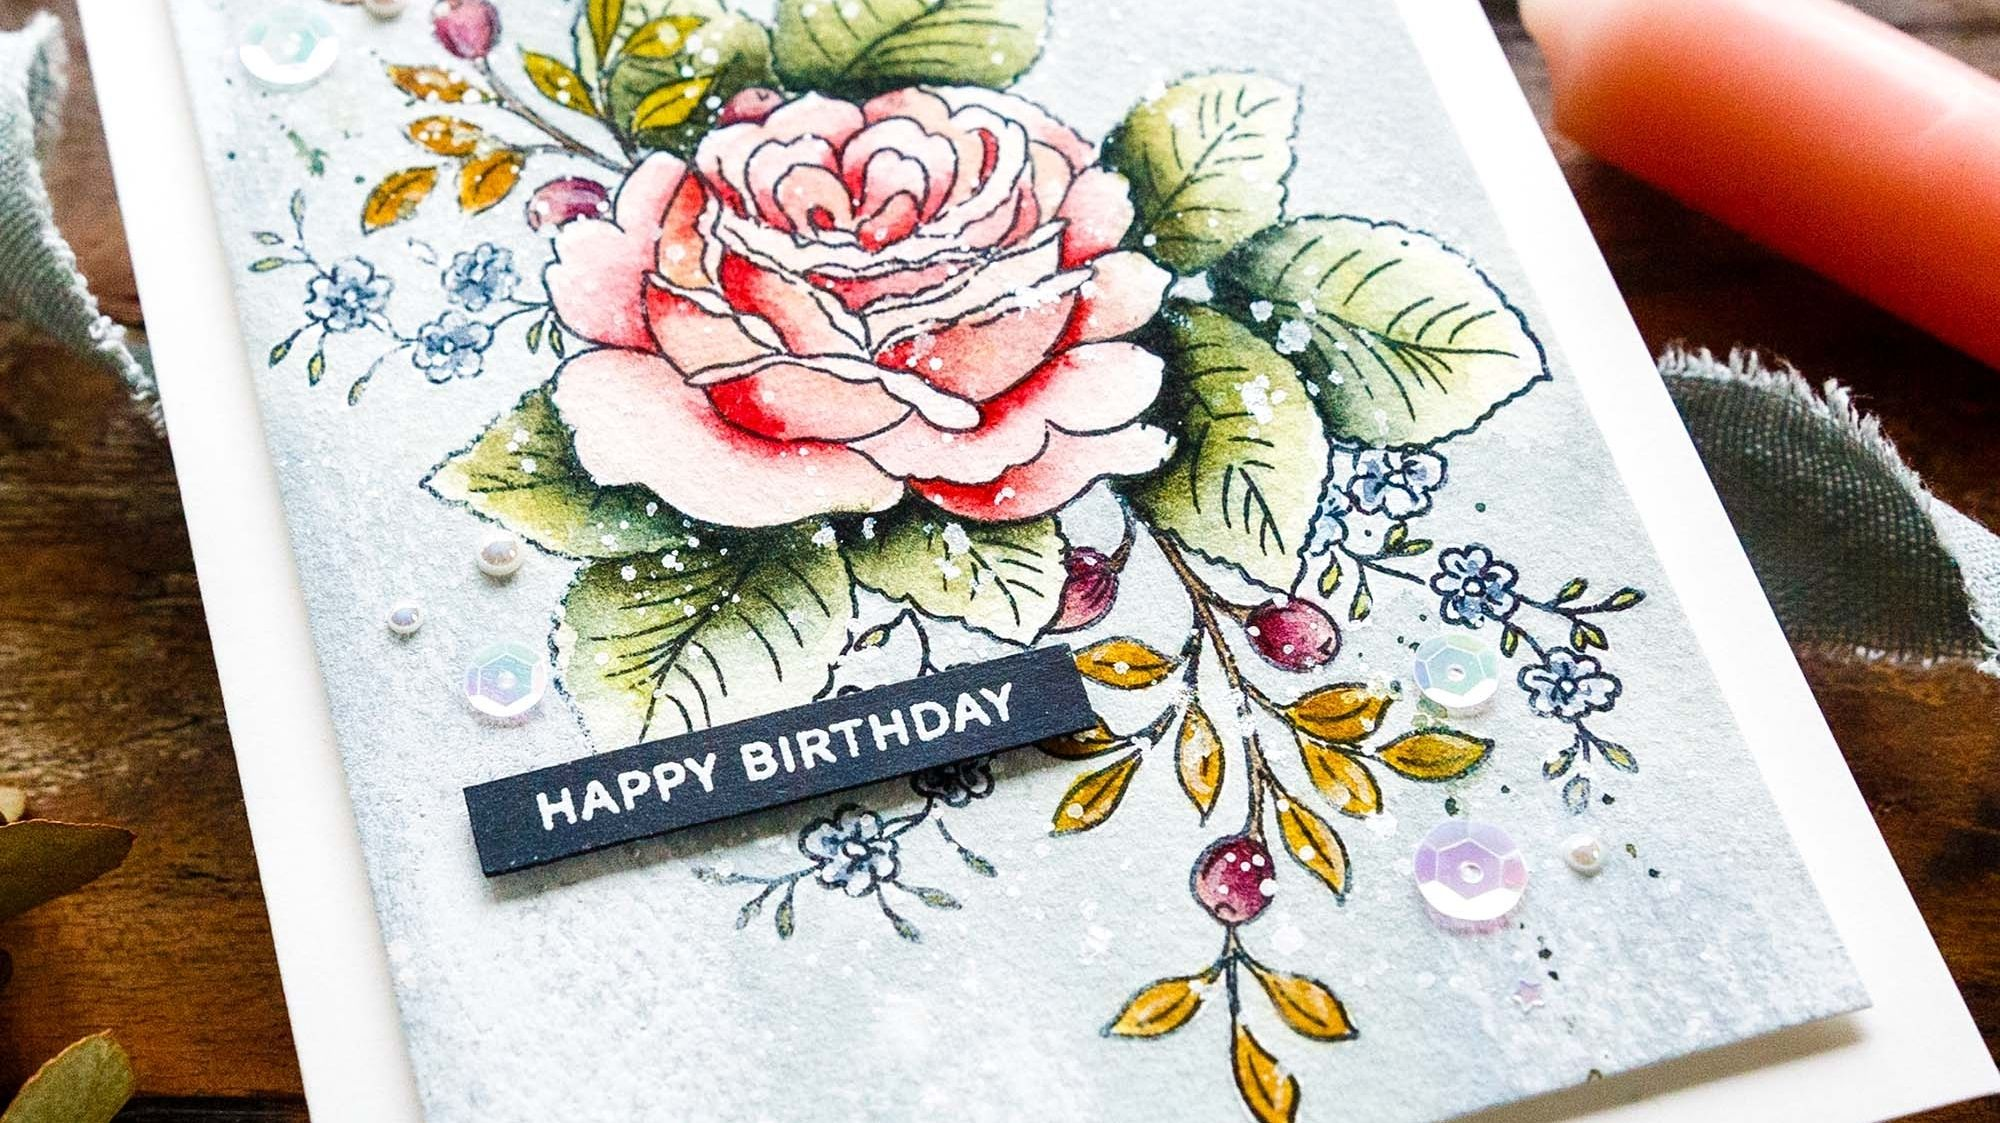 Building a floral bouquet with Altenew's STAMPtember set. Handmade card design by Debby Hughes.